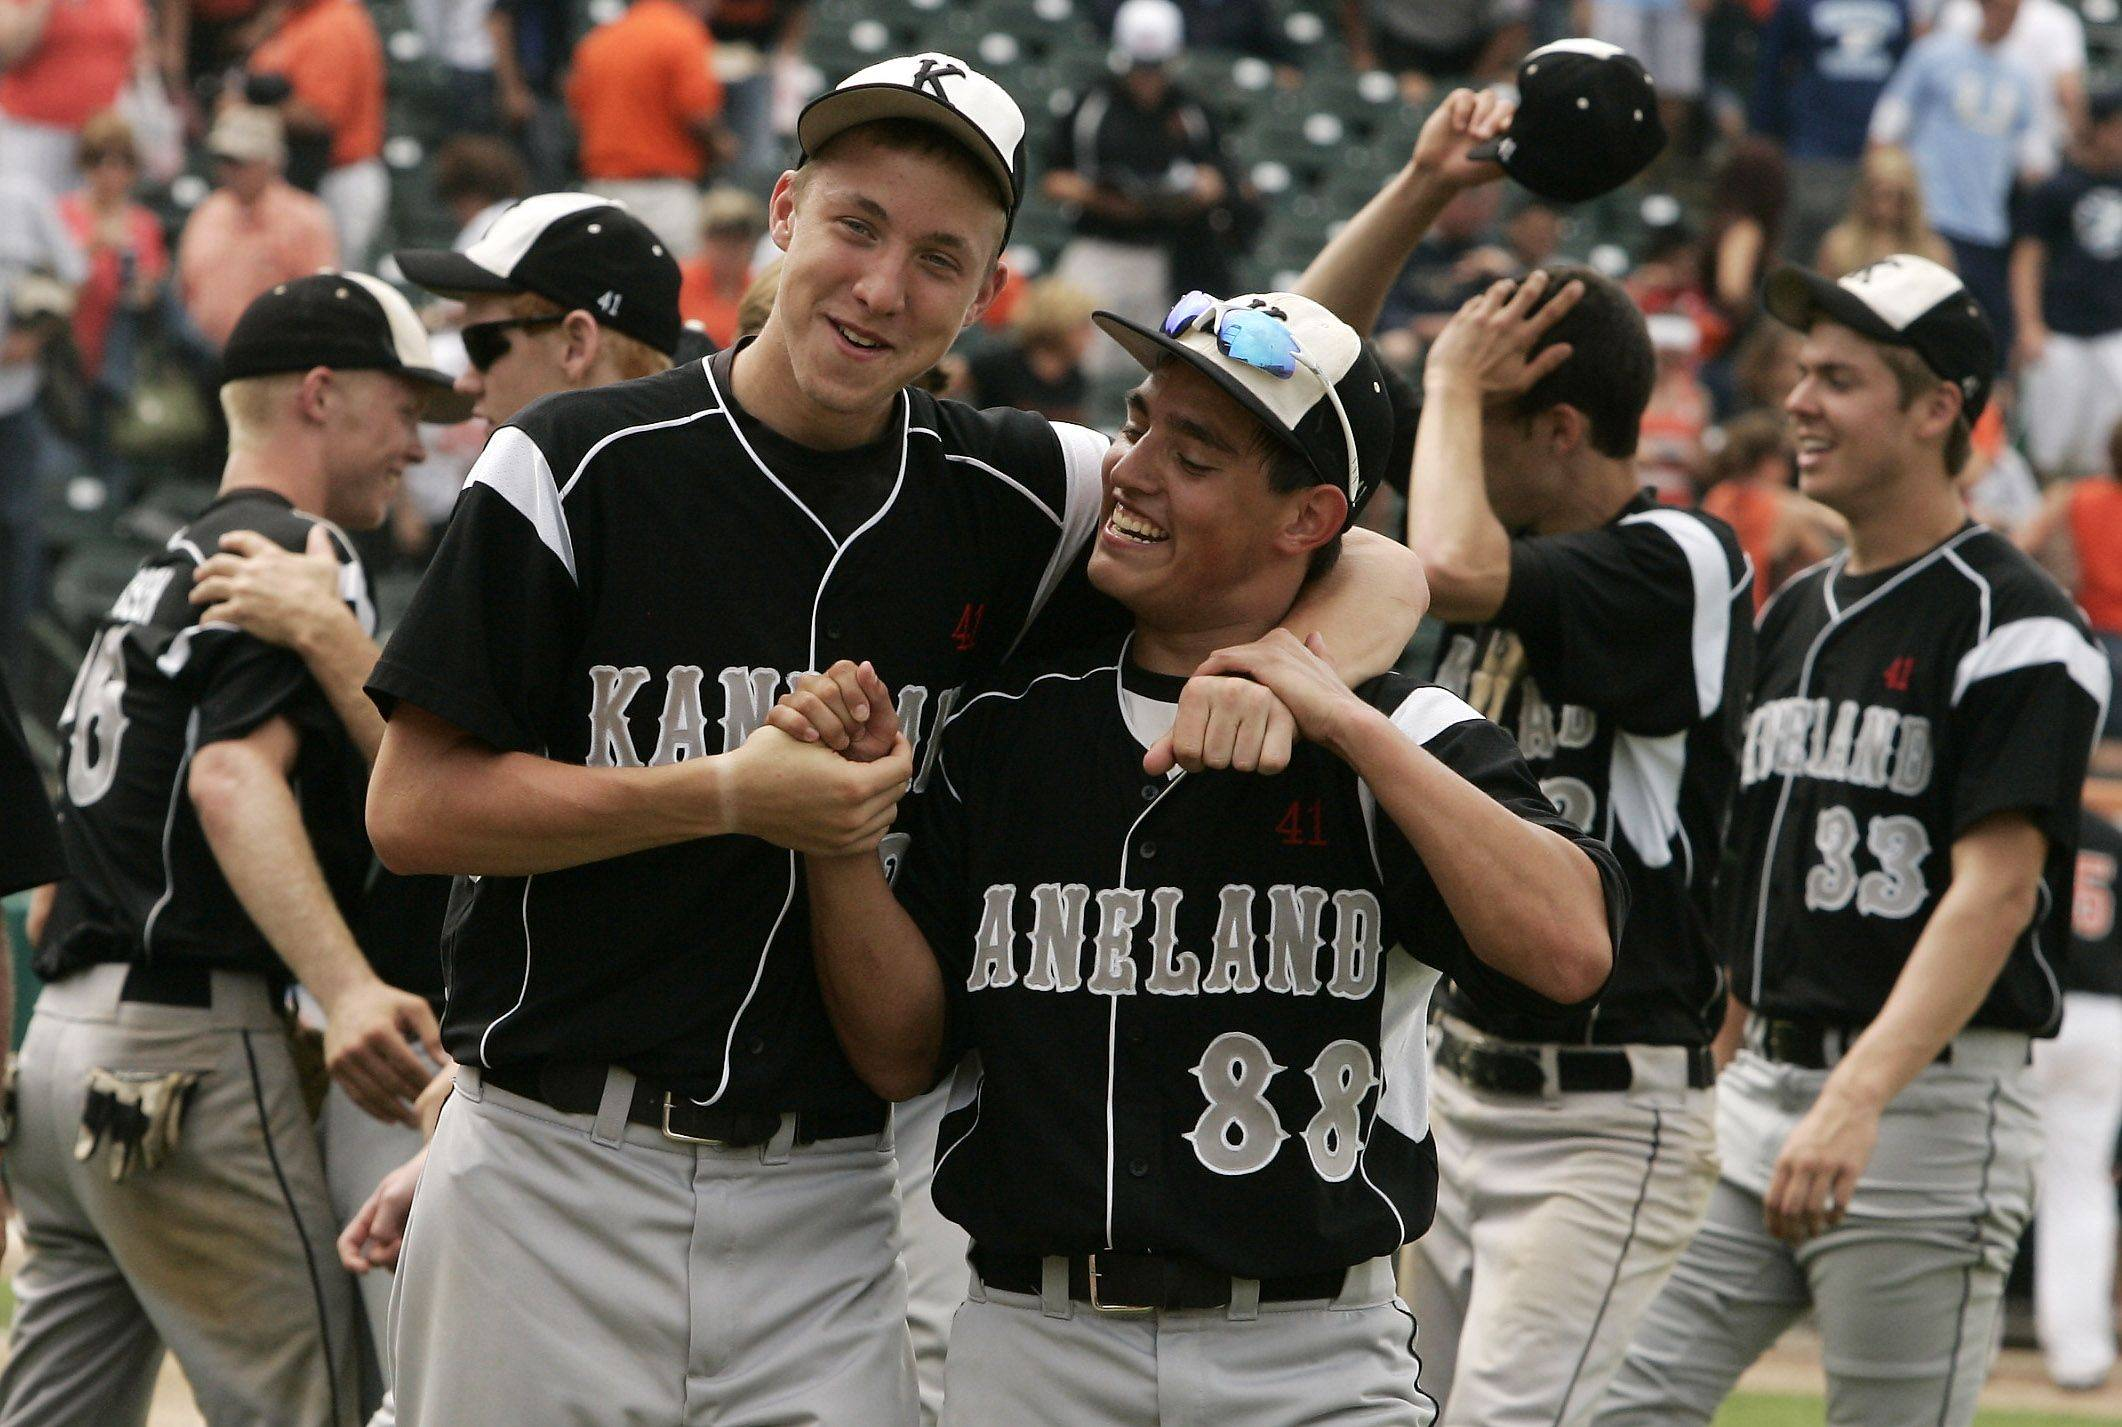 Kaneland players Trevor Heinle, left, and Jake Razo celebrate after defeating Waterloo.